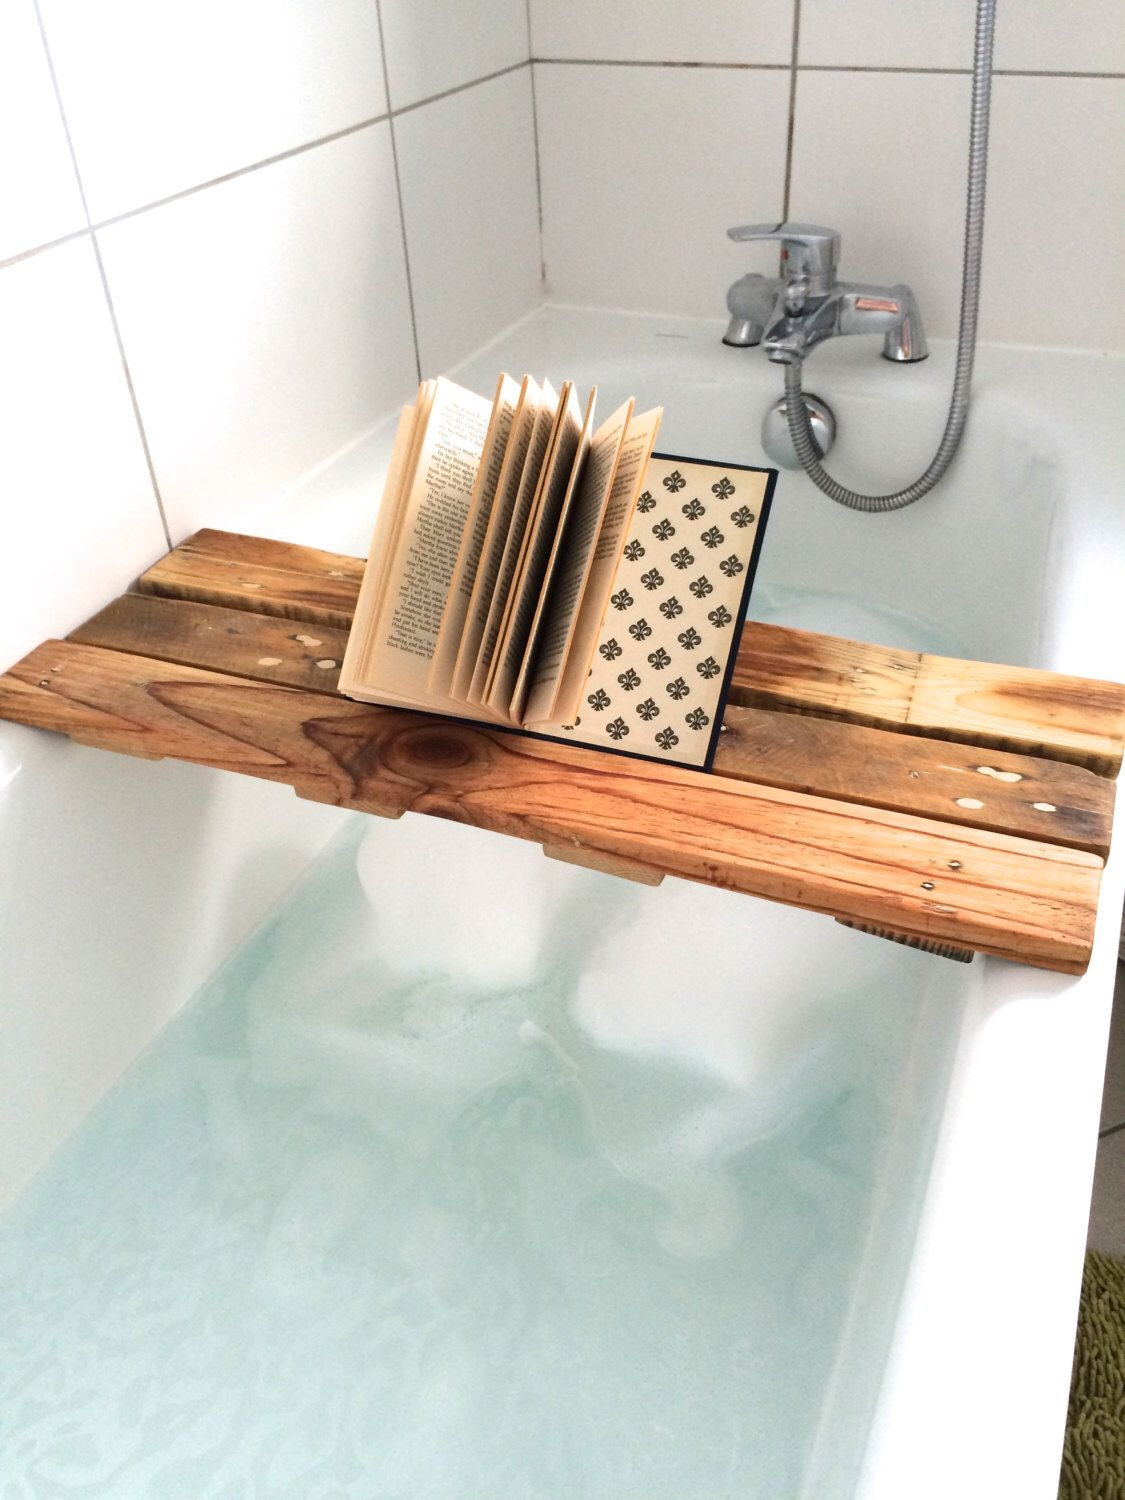 Wooden Bath Tray Shelf Caddy | Bath caddy, Bath and Postage prices